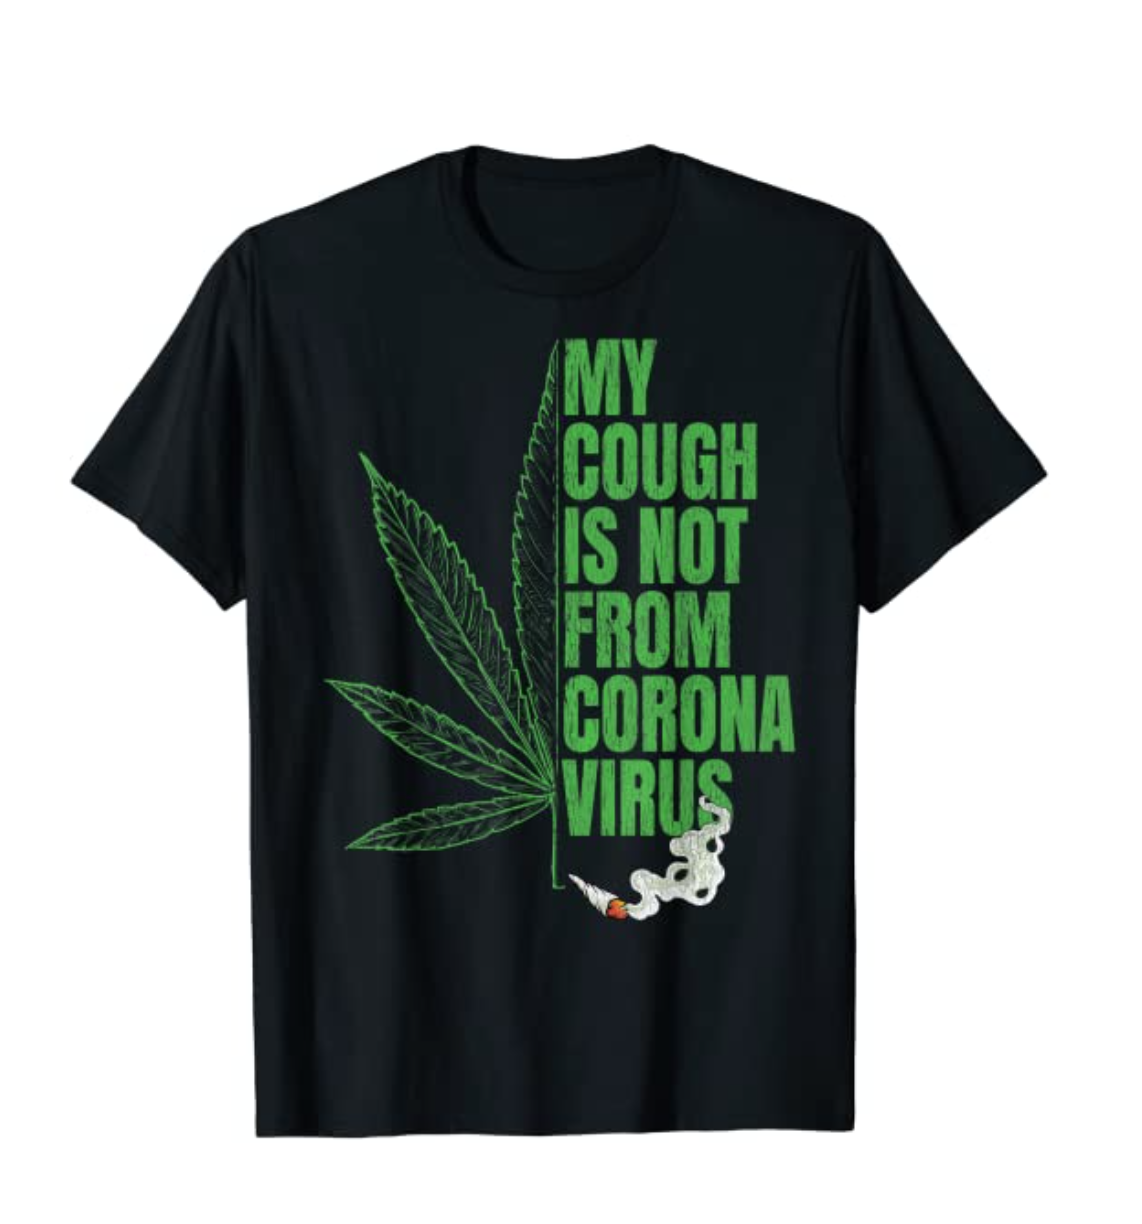 My Cough is Not from Corona Virus T-Shirt